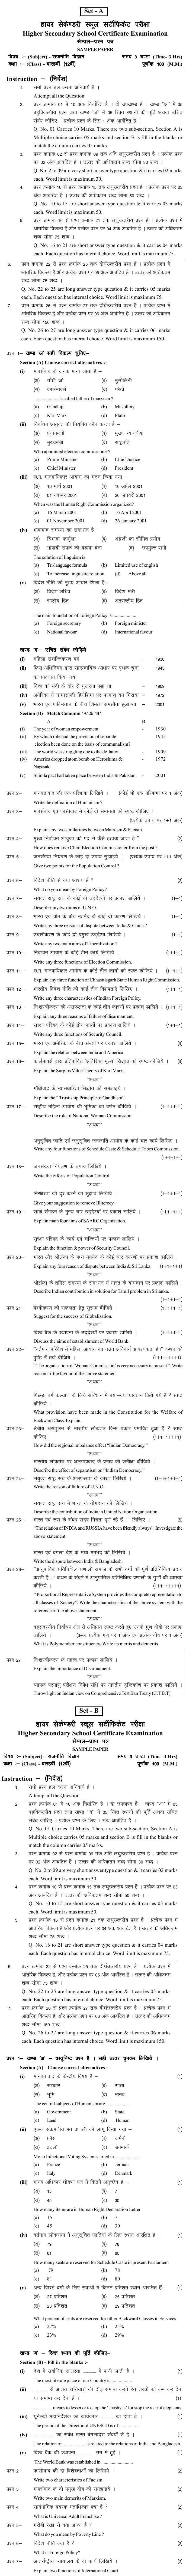 Chattisgarh Board Class 12 Political Science Sample Paper